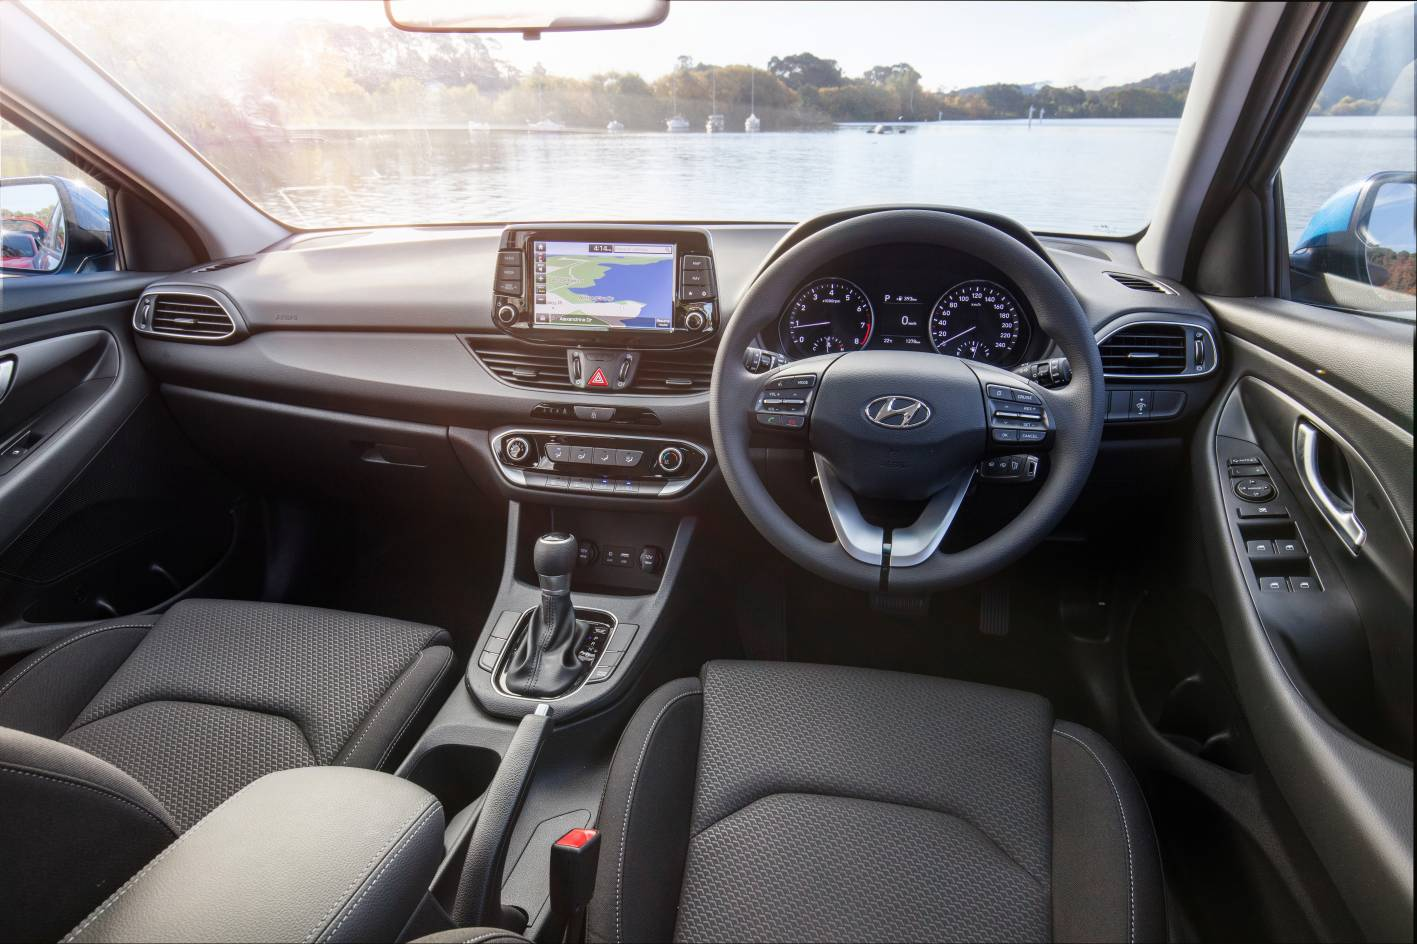 Hyundai i30 review & buyer's guide — Auto Expert by John Cadogan